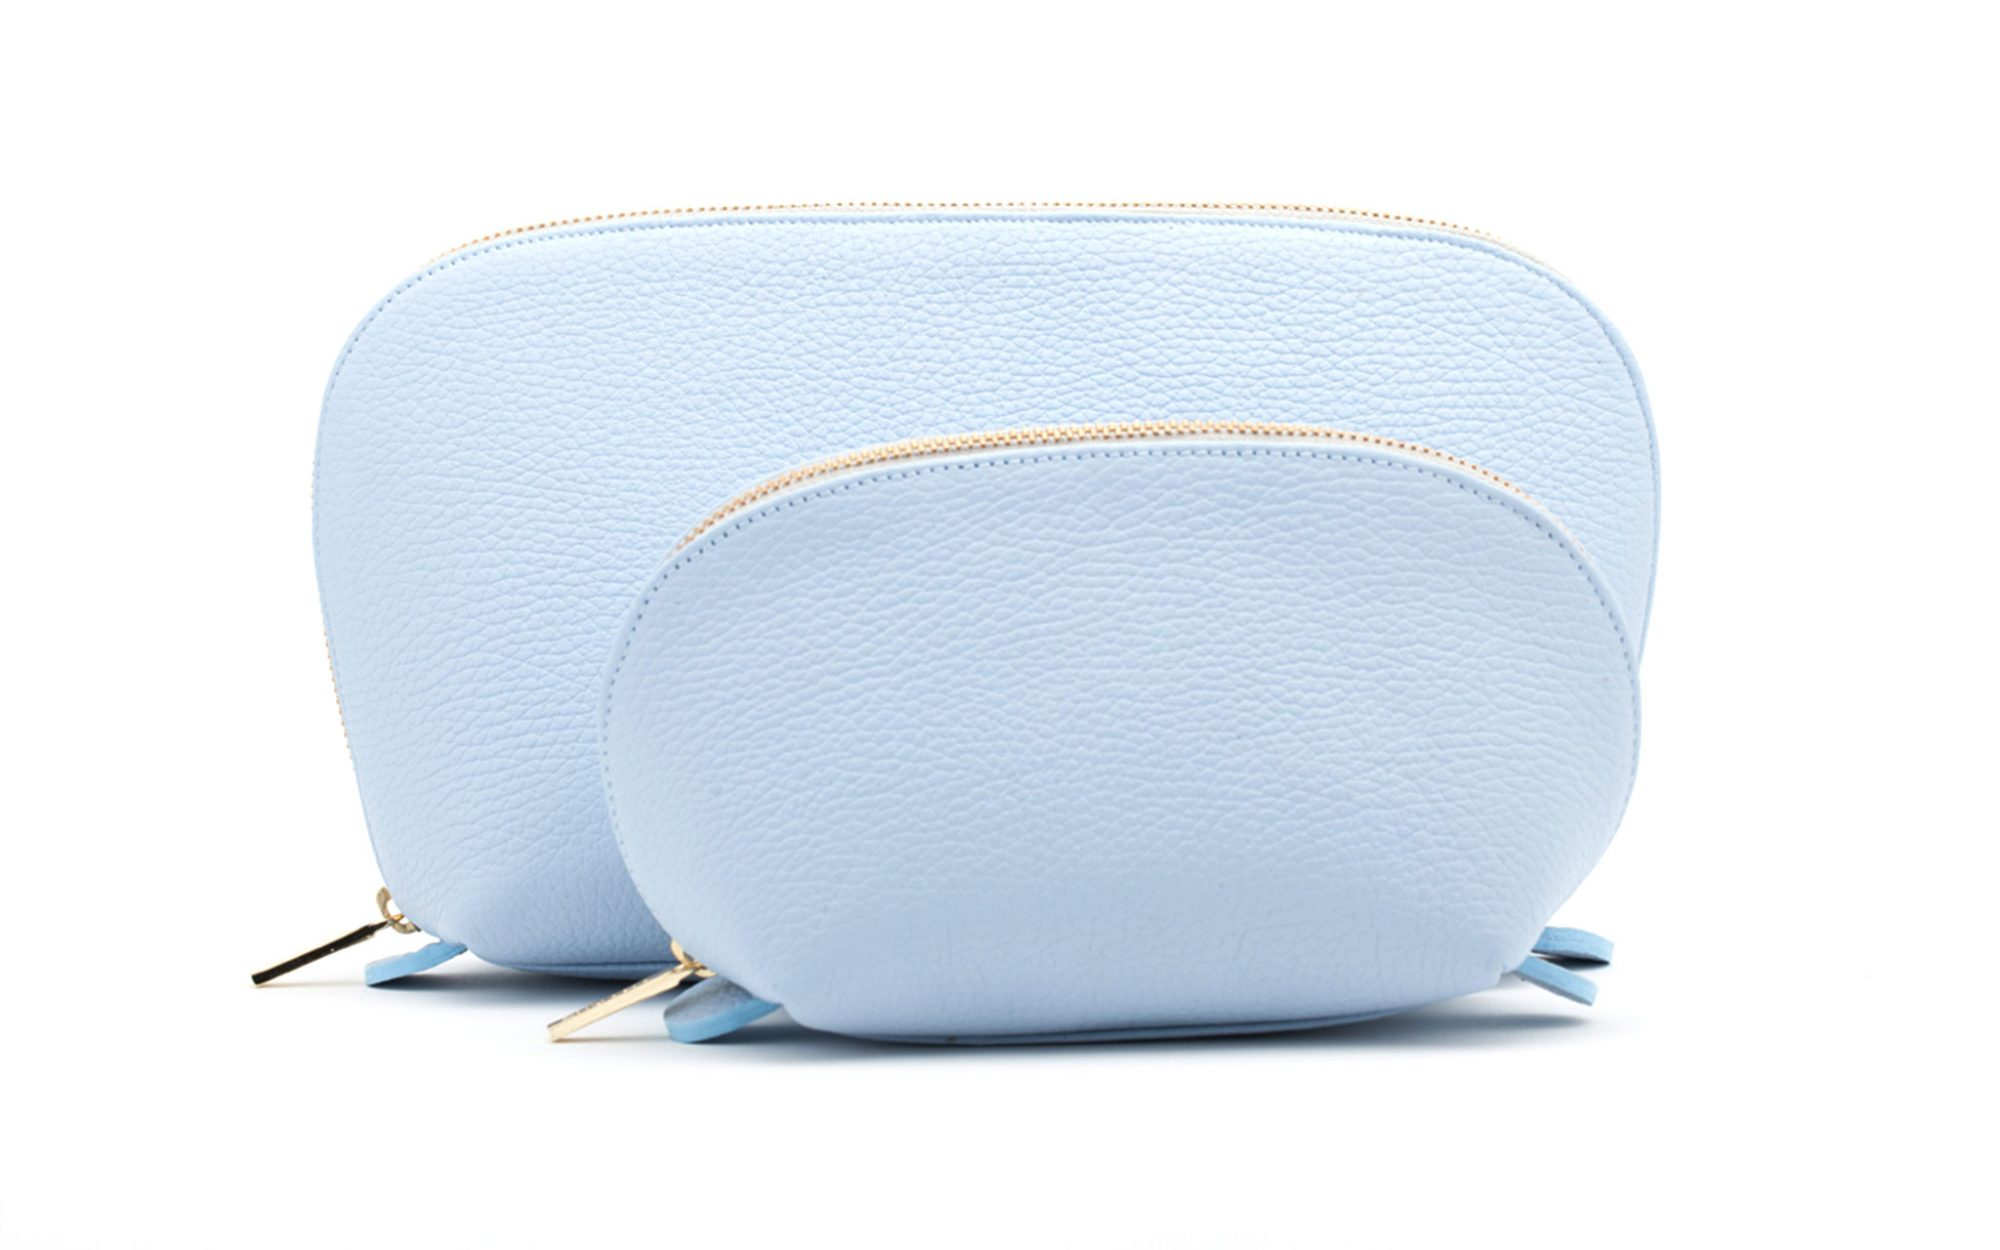 19 Liquid-Free Beauty Products for a Spill-Proof Carry-On: Cuyana Travel Case Set